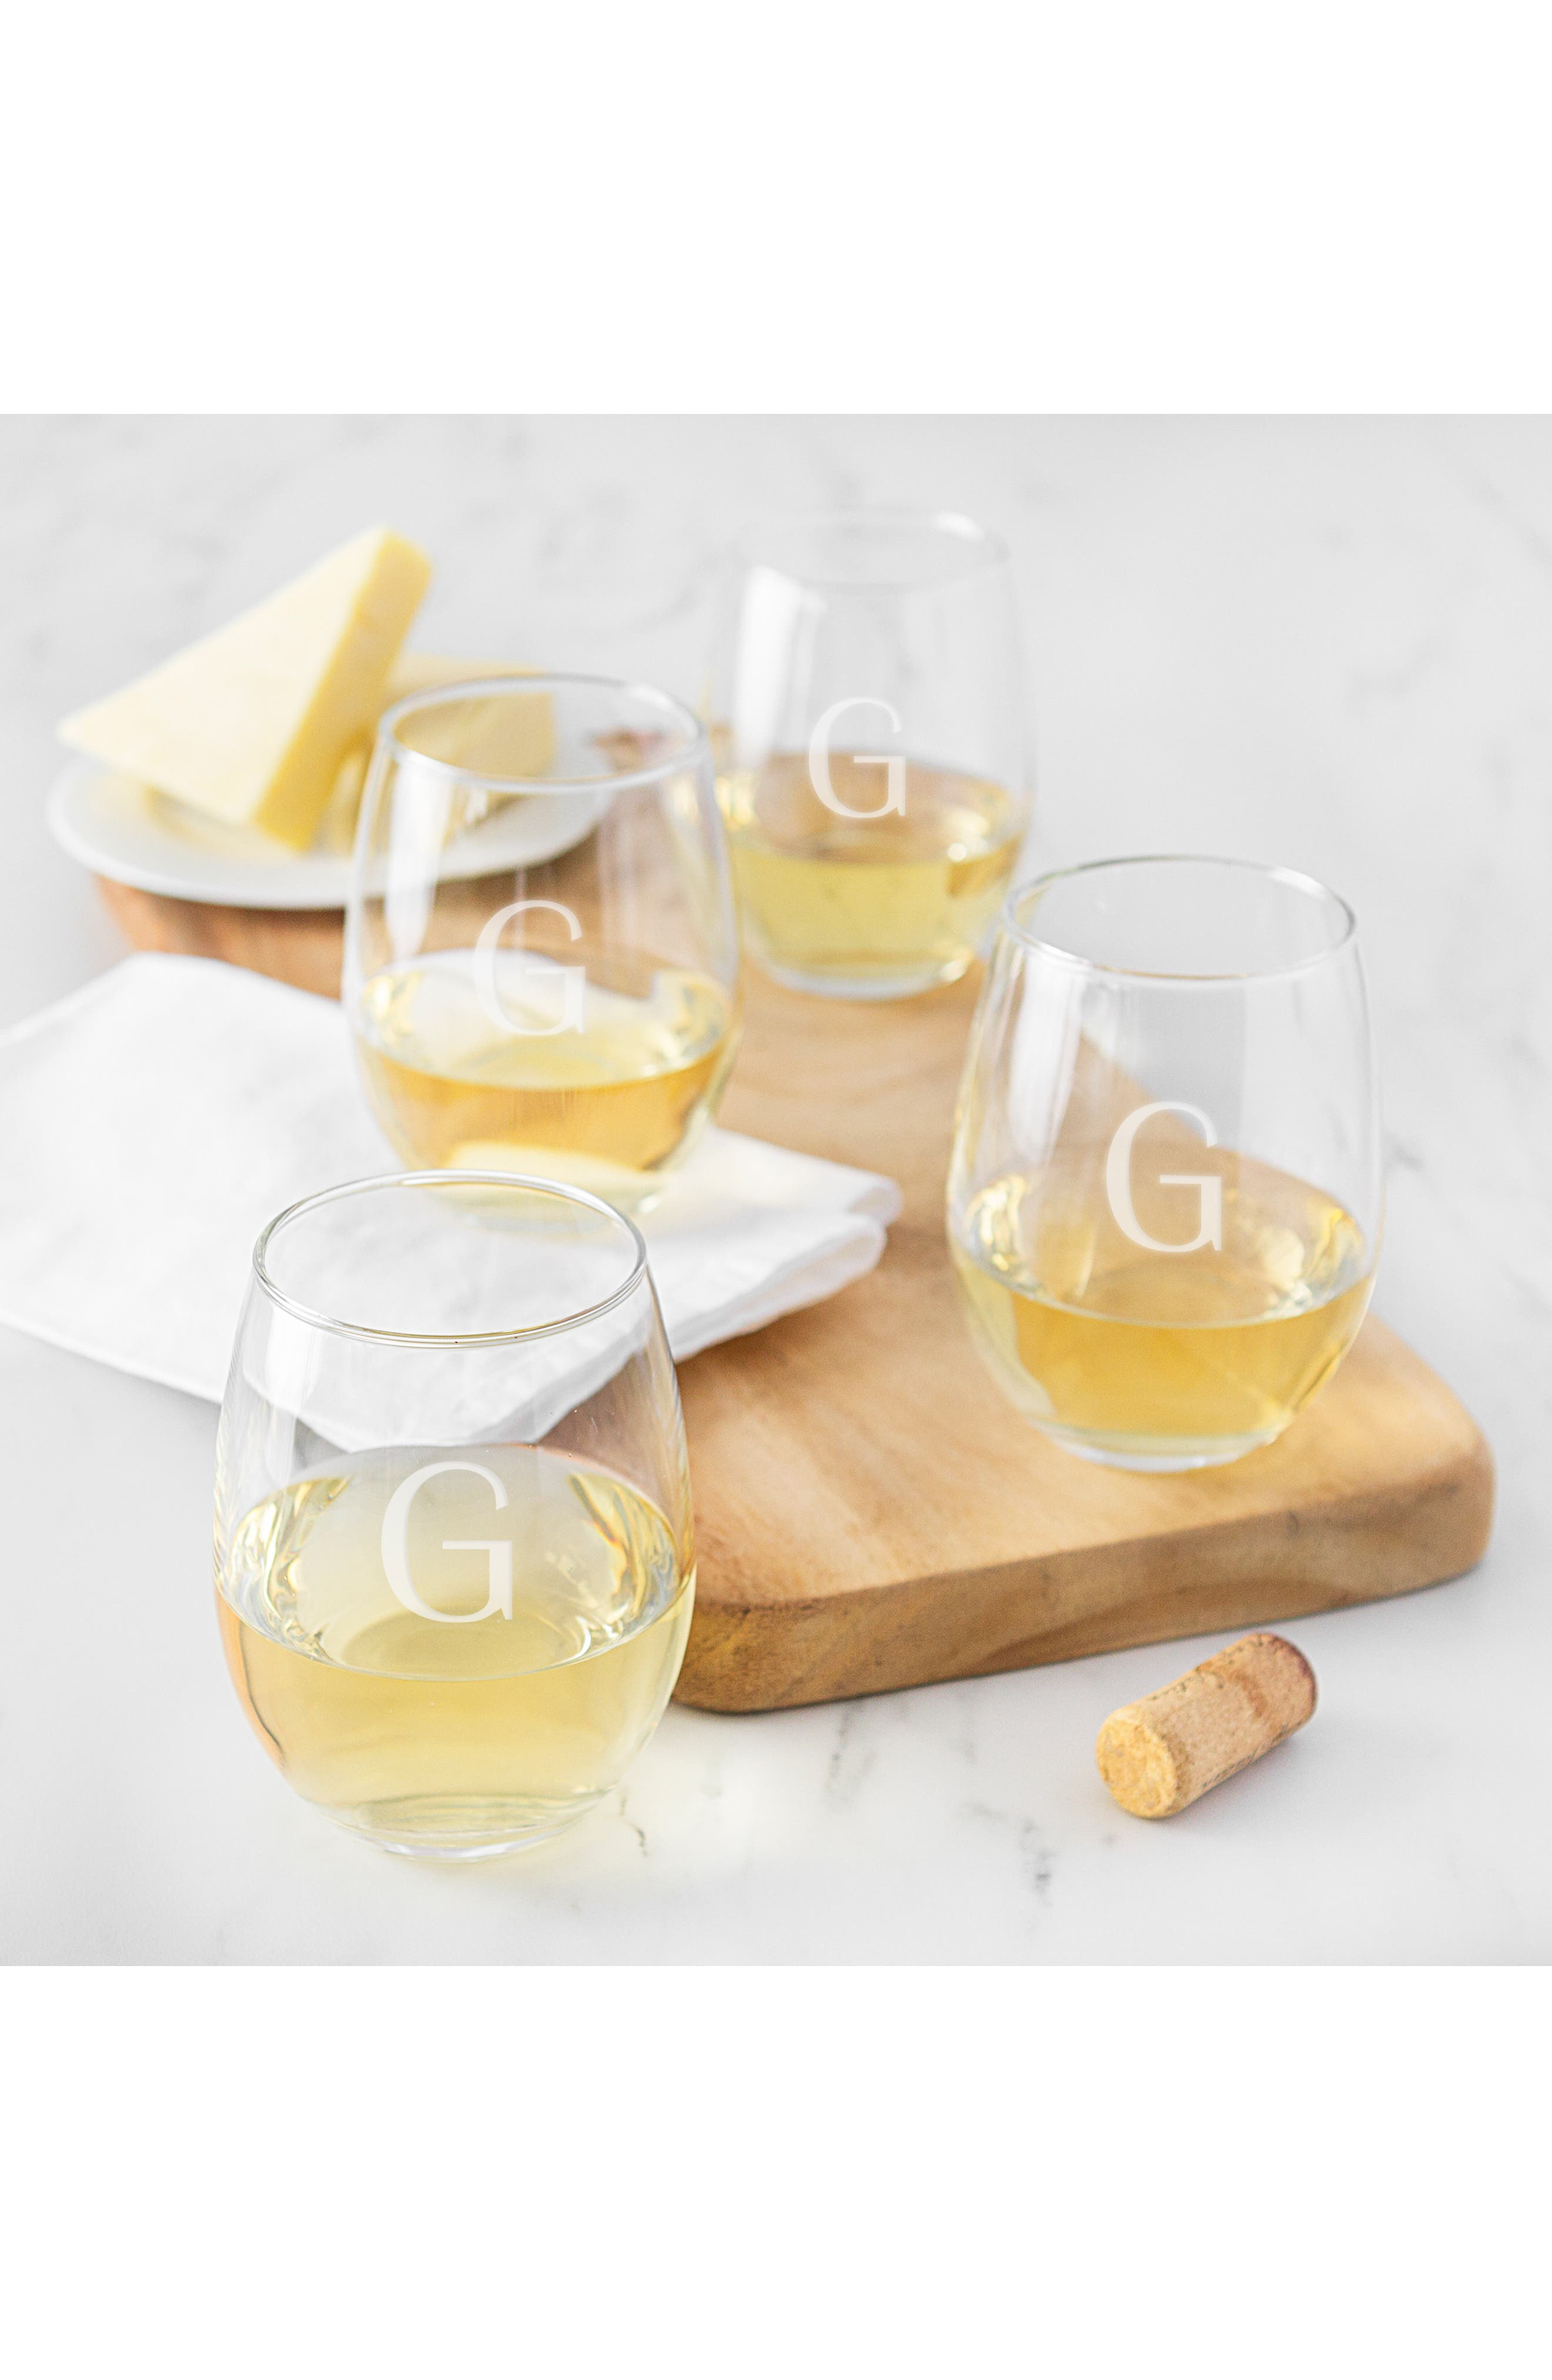 Estate Collection Set of 4 Monogram Stemless Wine Glasses,                             Alternate thumbnail 4, color,                             BLANK